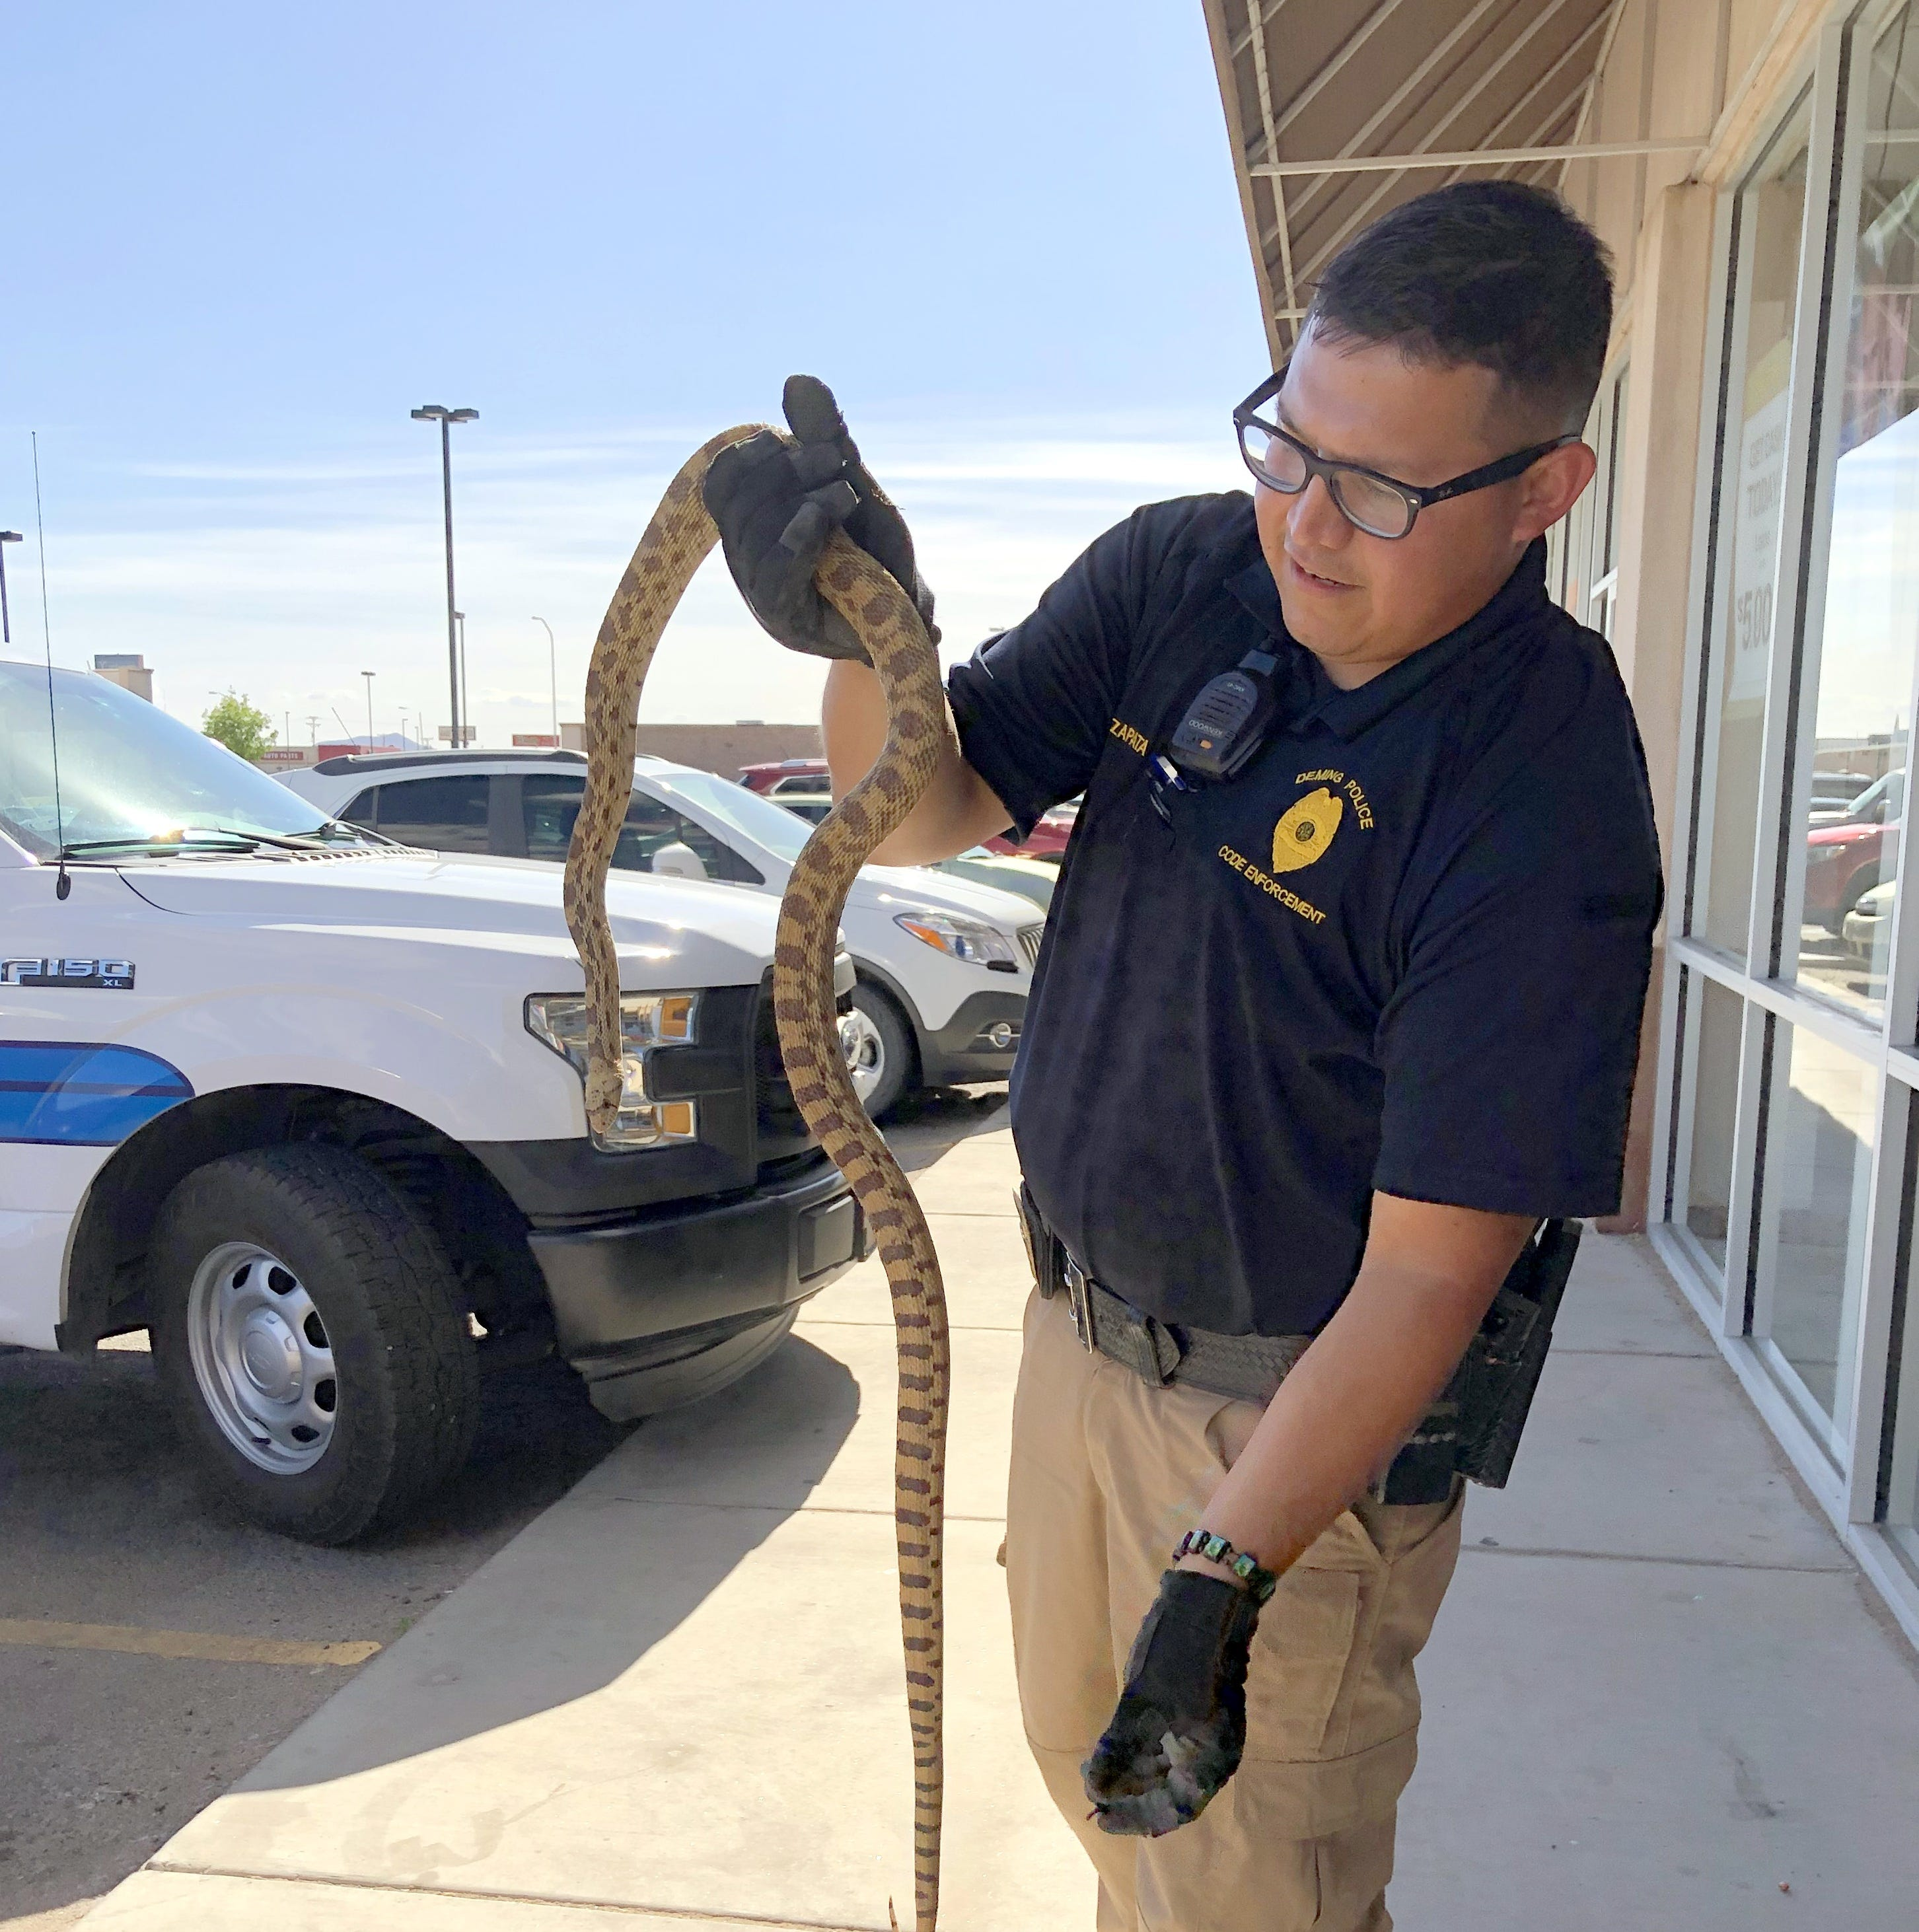 Deming Animal Control Officer Francisco Zapata rescues snake at local business